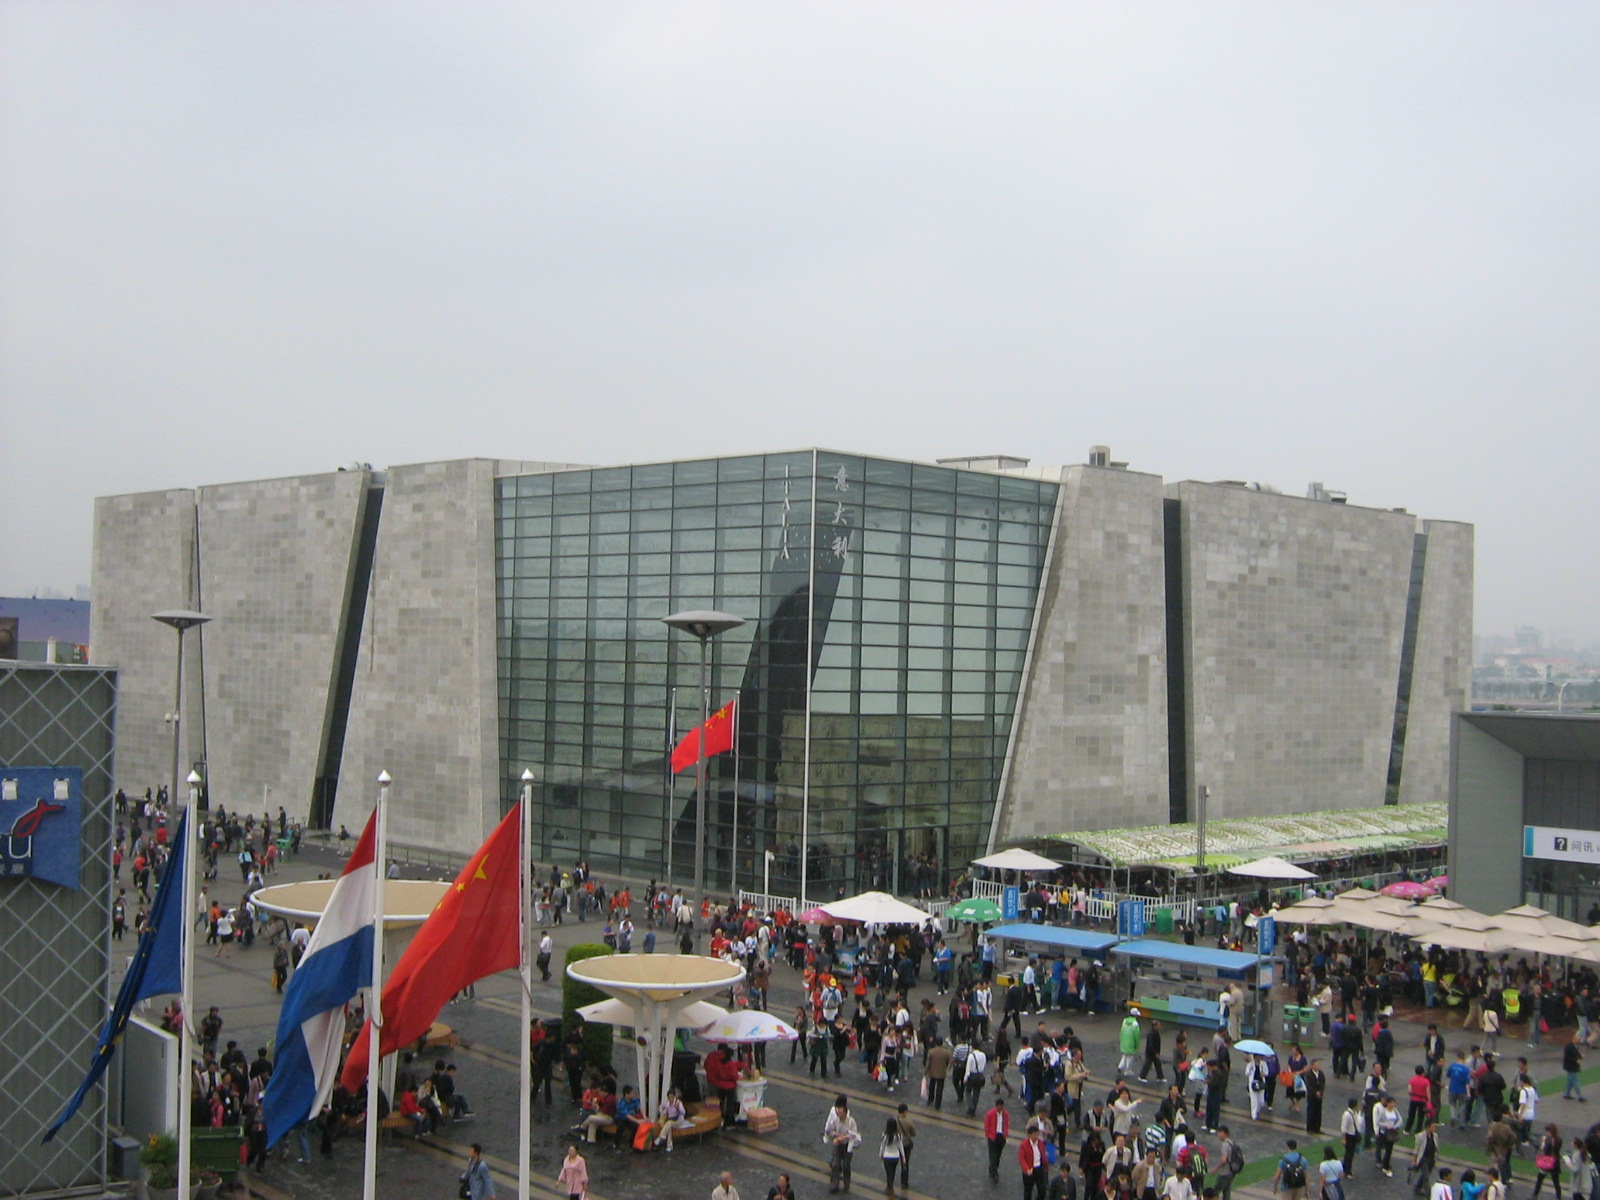 File:Italy Pavillion at 2010 Shanghai Expo.jpg - Wikimedia Commons